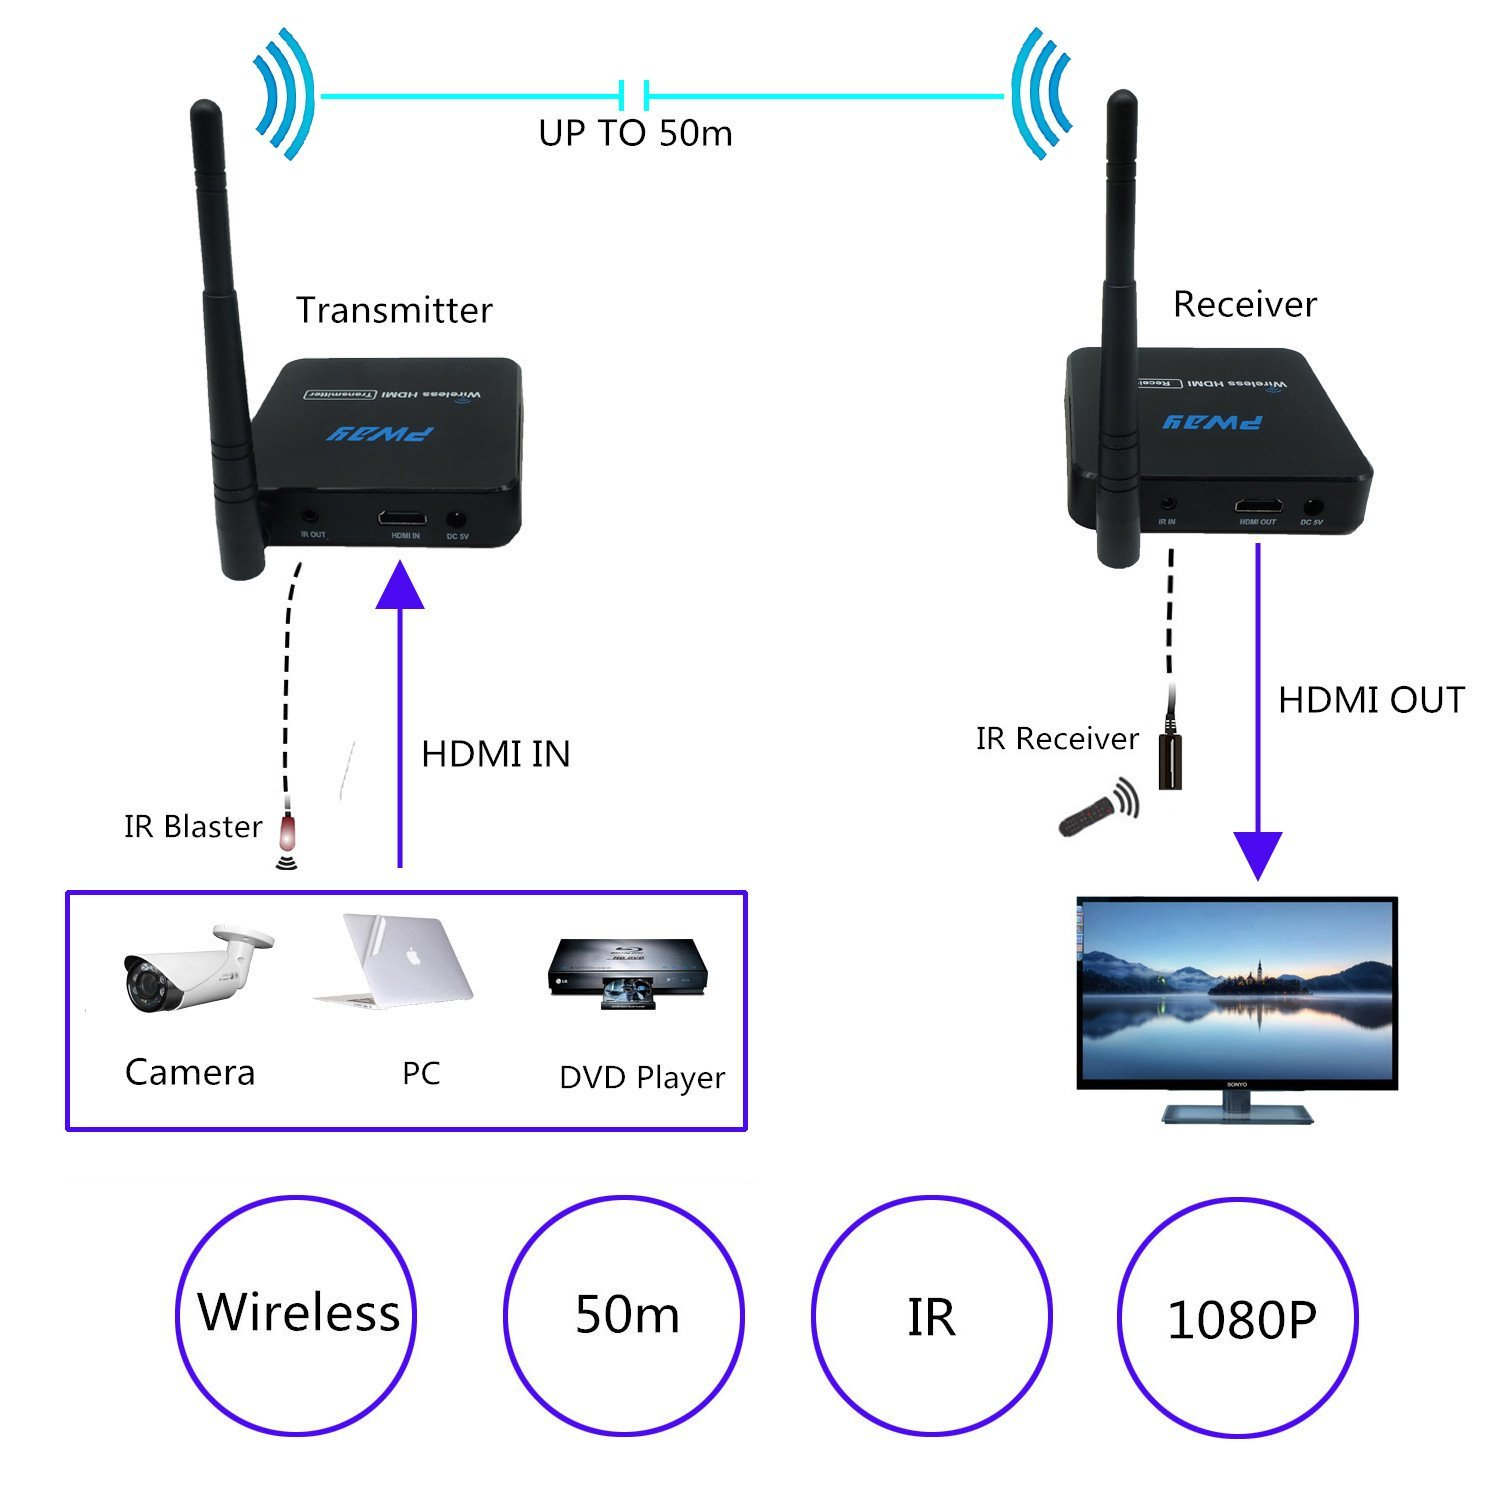 PWAY Wireless HDMI Extender up to 50m  Transmitter and Receiver with IR Remove Control